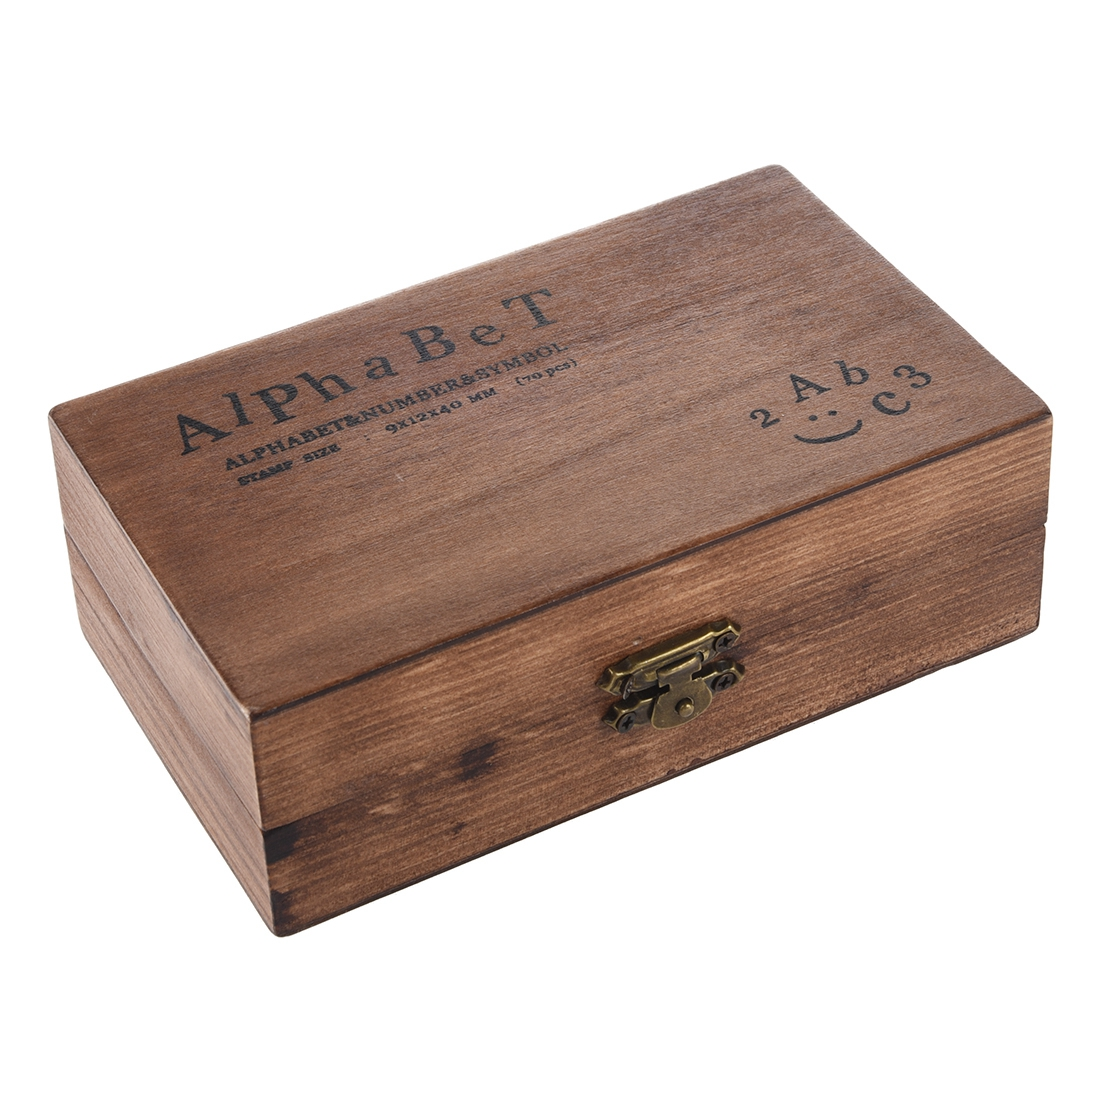 Hot sale Pack of 70pcs Rubber Stamps Set Vintage Wooden Box Case Alphabet Letters Number Craft (No Ink Pad Included) details about east of india rubber stamps christmas weddings gift tags special occasions craft